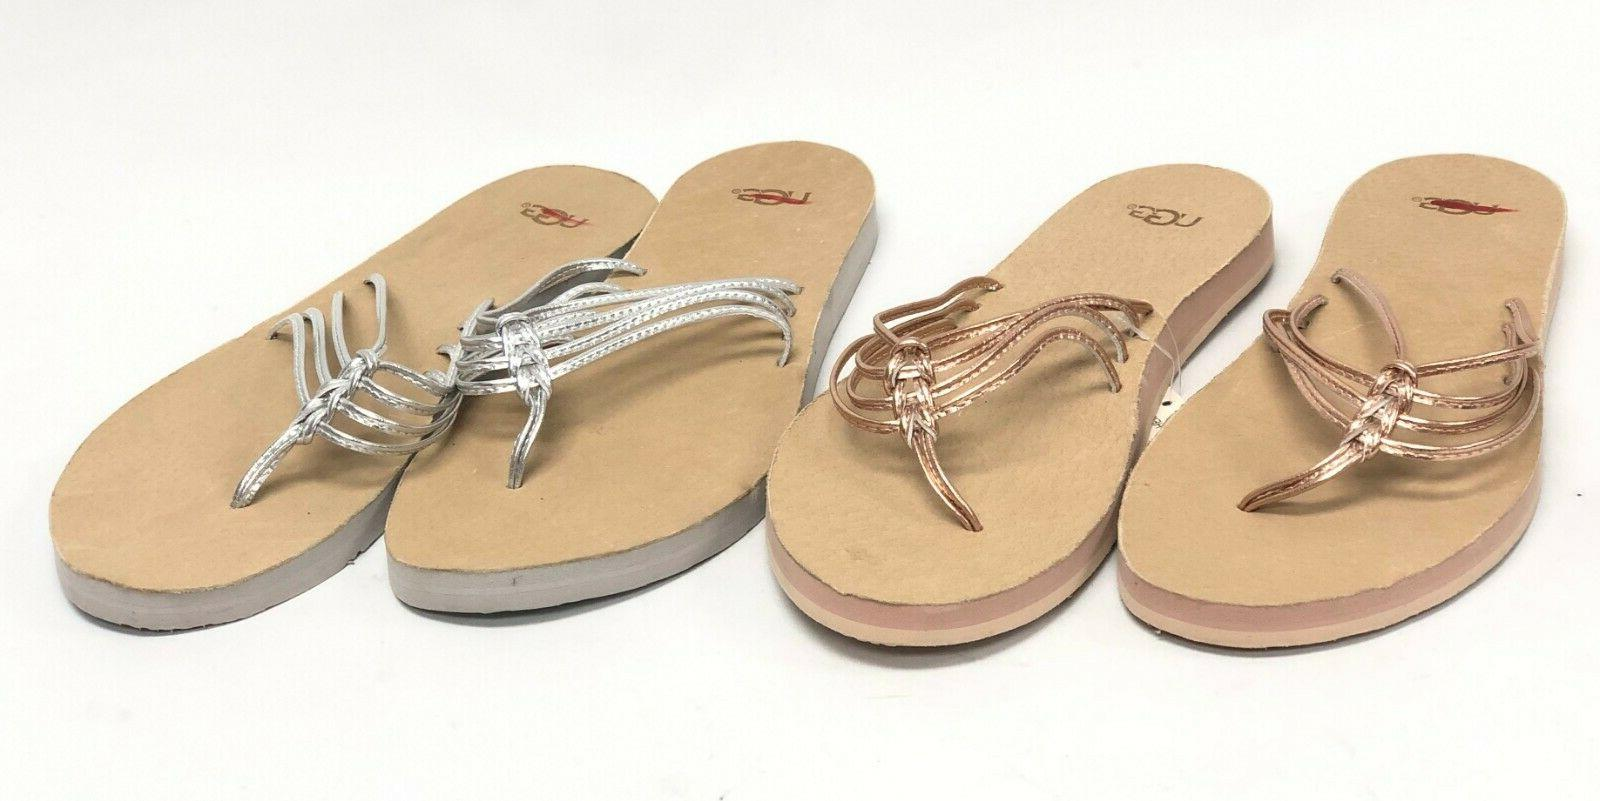 Ugg Metallic Rose Silver Sandals Flip